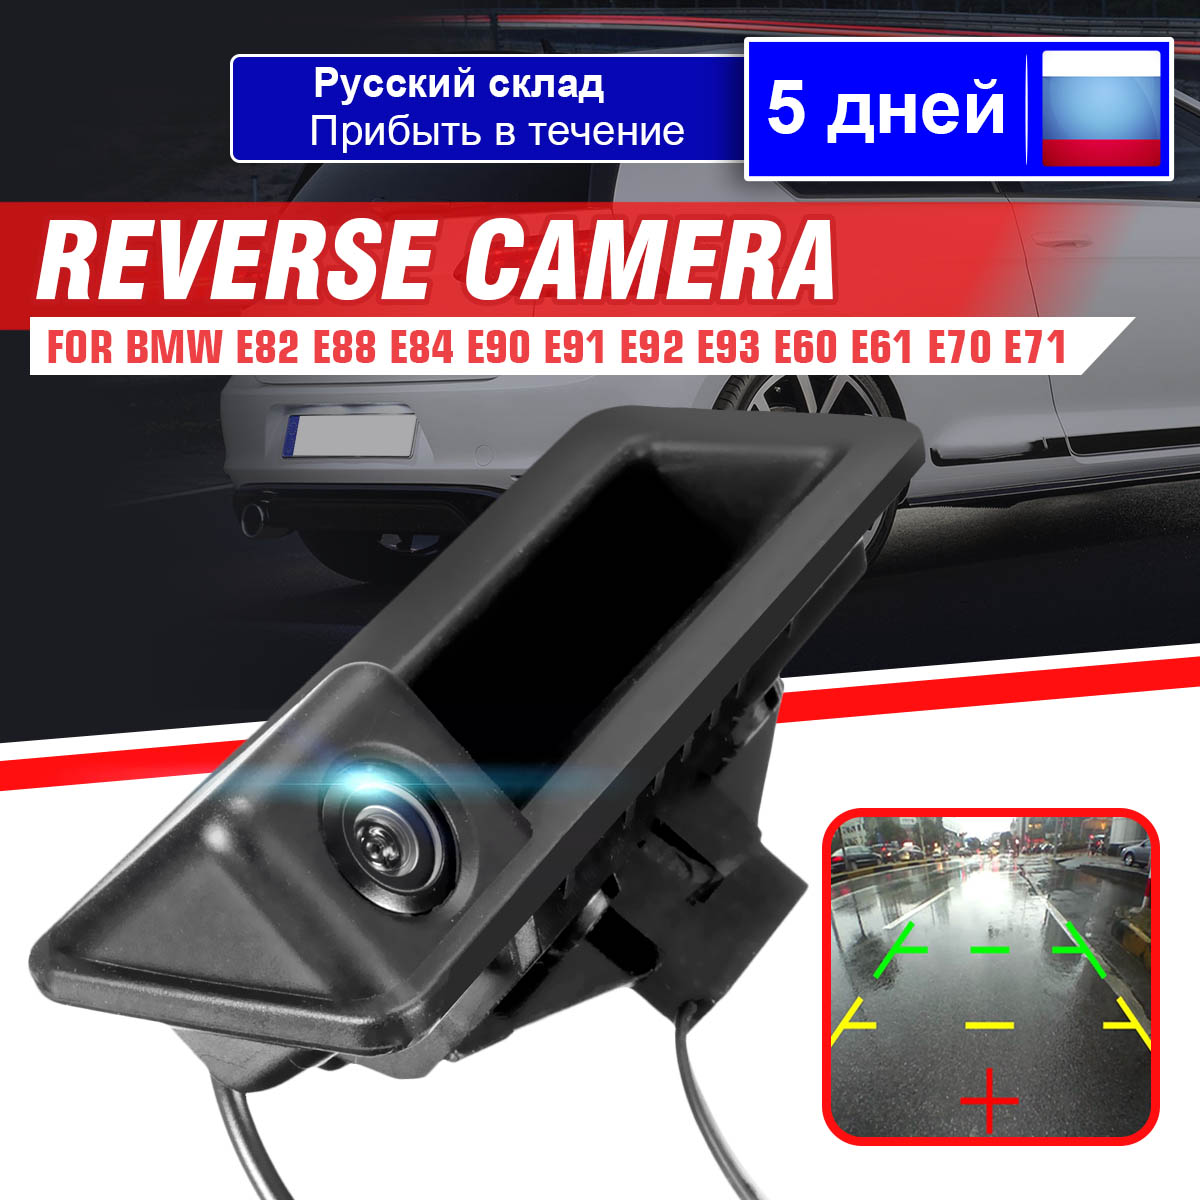 Auto Car Rear View Camera Reverse Parking HD CCD For BMW X5 X1 X6 E39 E46 E53 E82 E88 E84 E90 E91 E92 E93 E60 E61 E70 E71 E72|camera 170 degree|170 degree|reverse camera 170 - title=